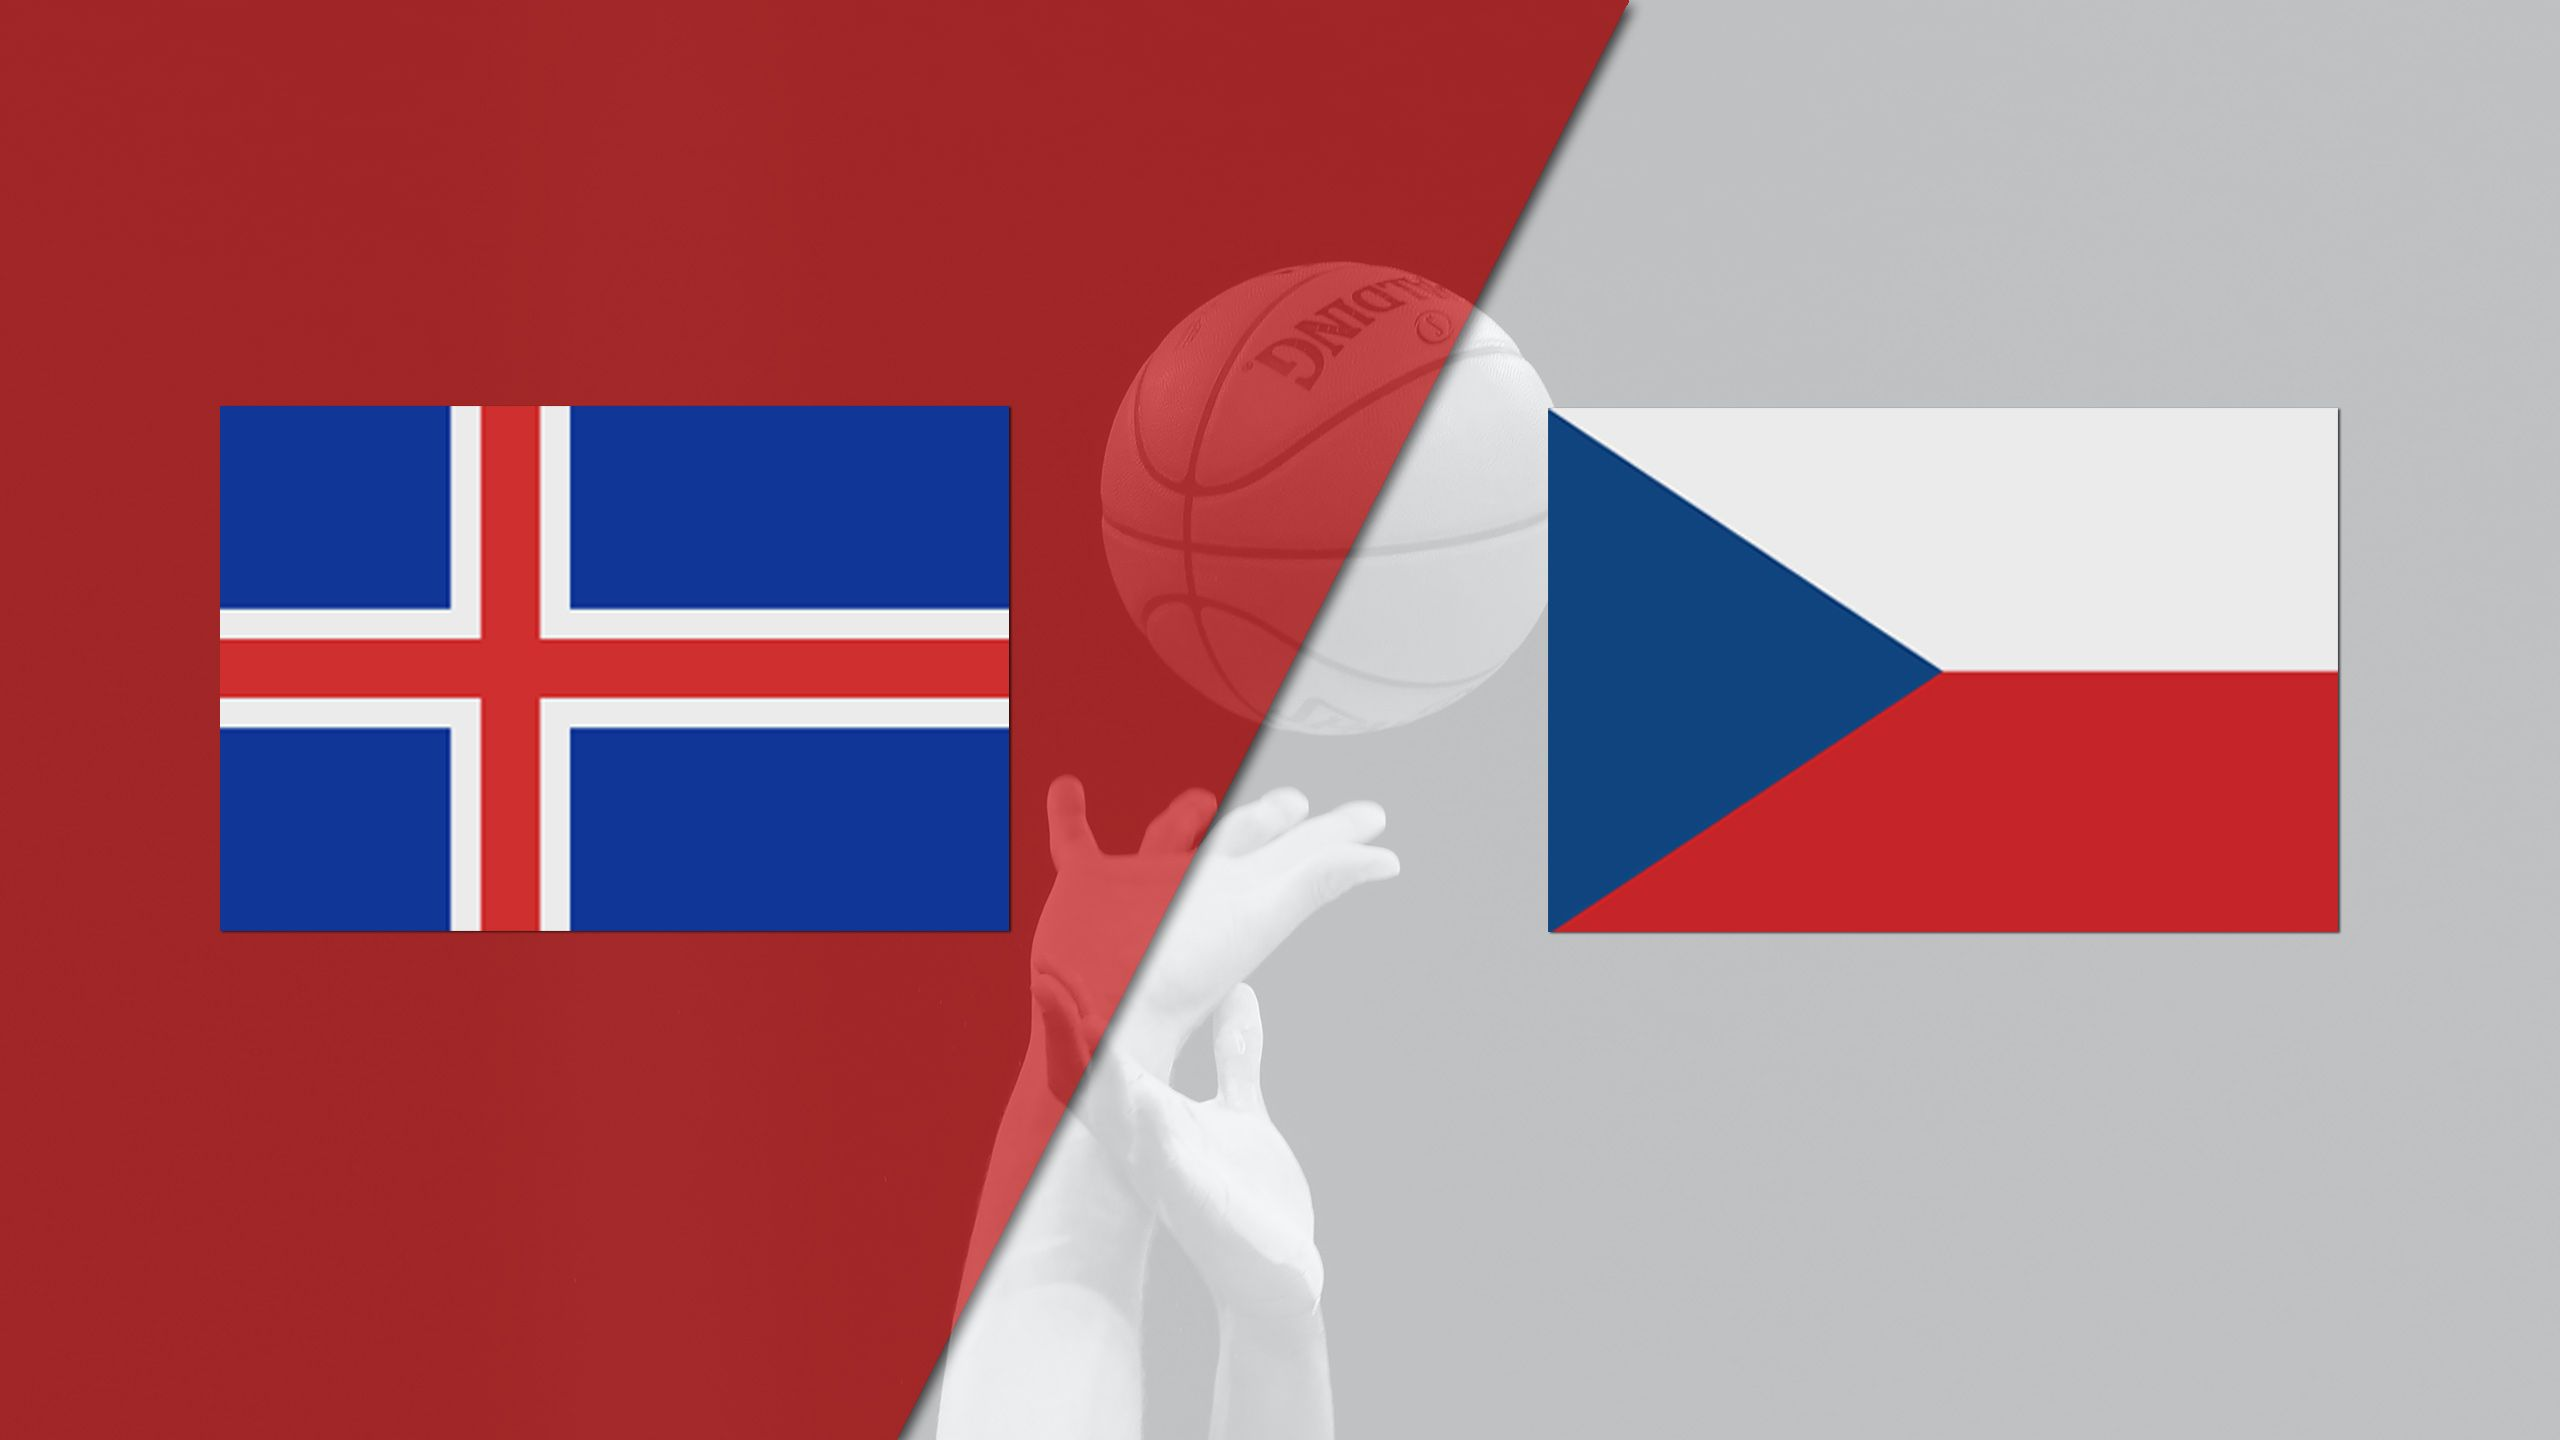 Iceland vs. Czech Republic (FIBA World Cup 2019 Qualifier)